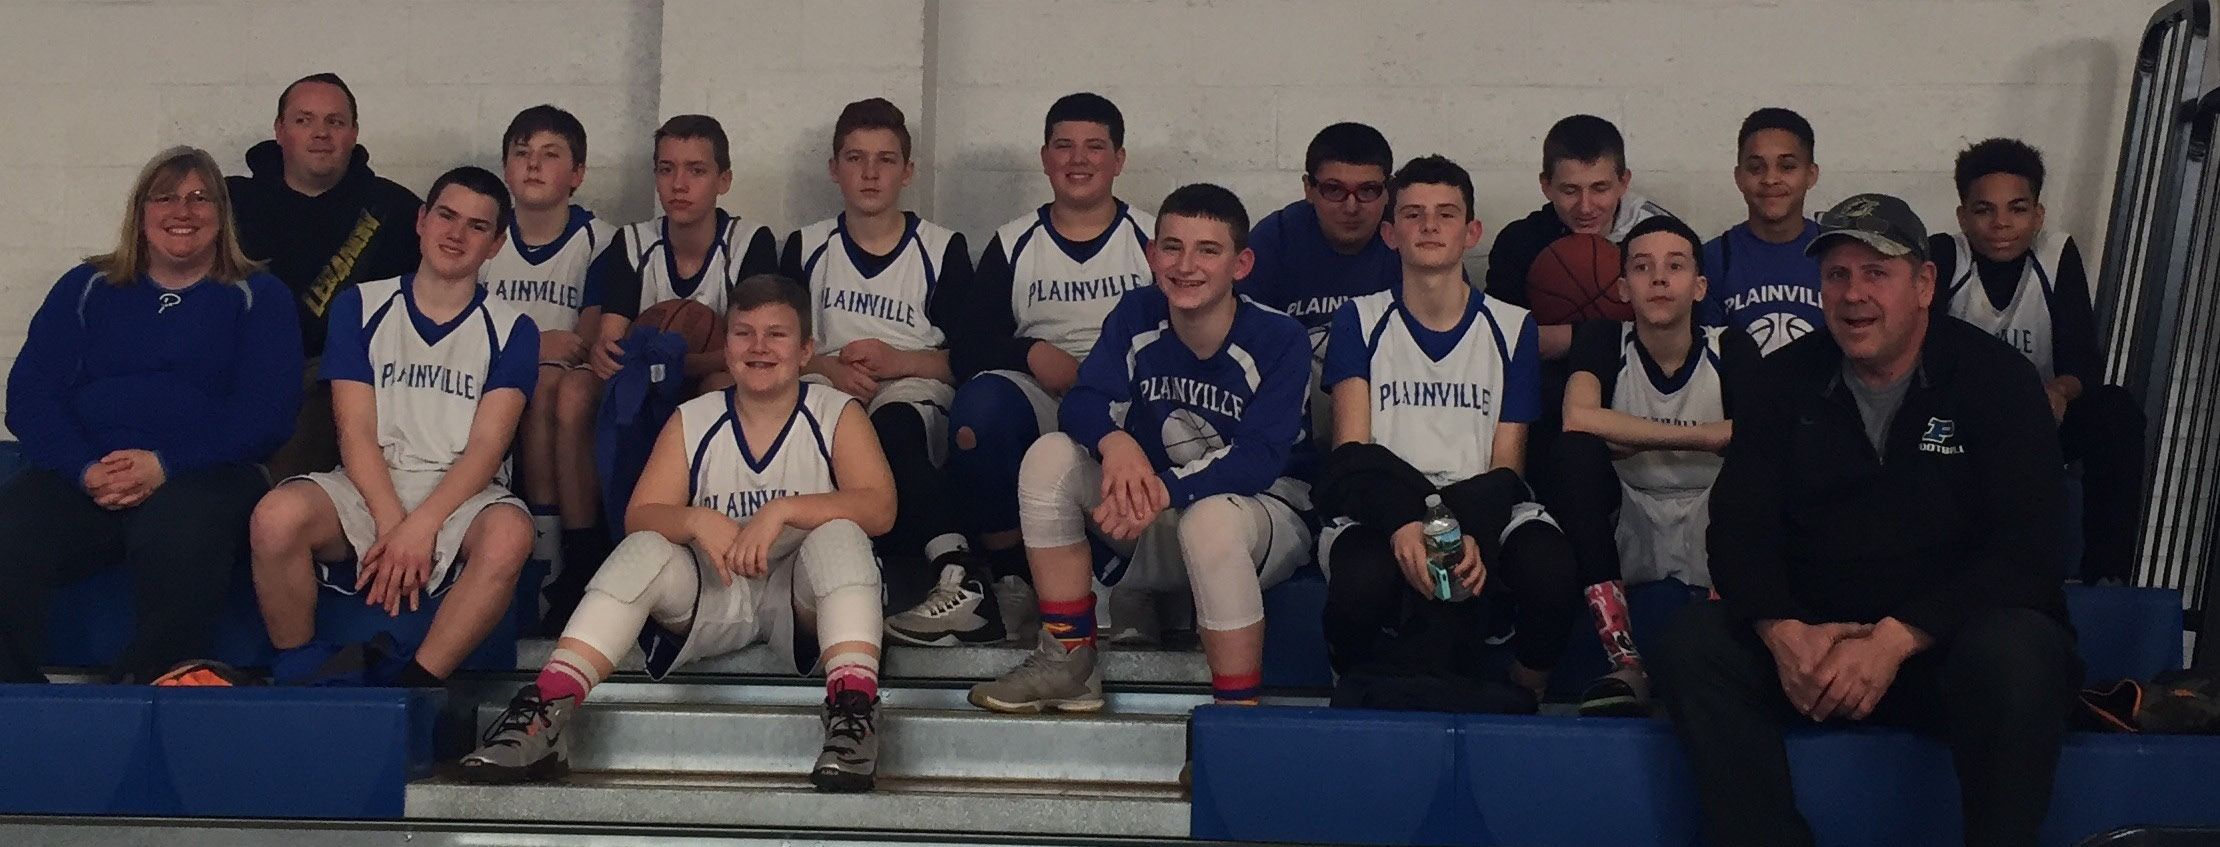 The Plainville eighth grade boys travel basketball team finished its season with a dominating 17-2 record. The team won the North Central Connecticut Conference Division during the regular season and placed second in the playoff tournament. The Plainville team was comprised of: Ryan Barker, Jayden Barton, Tanner Callahan, Alec Couture, Jayden Derosier, Jacob Deschaine, Austin Halat, Dylan Hall, Anthony Lestini, Adrien Marcos, Daniel Nanowski, Javan Paradis and Xavier Pastor. The team was coached by Steve Barker, Julie Callahan and Matt McLellan.